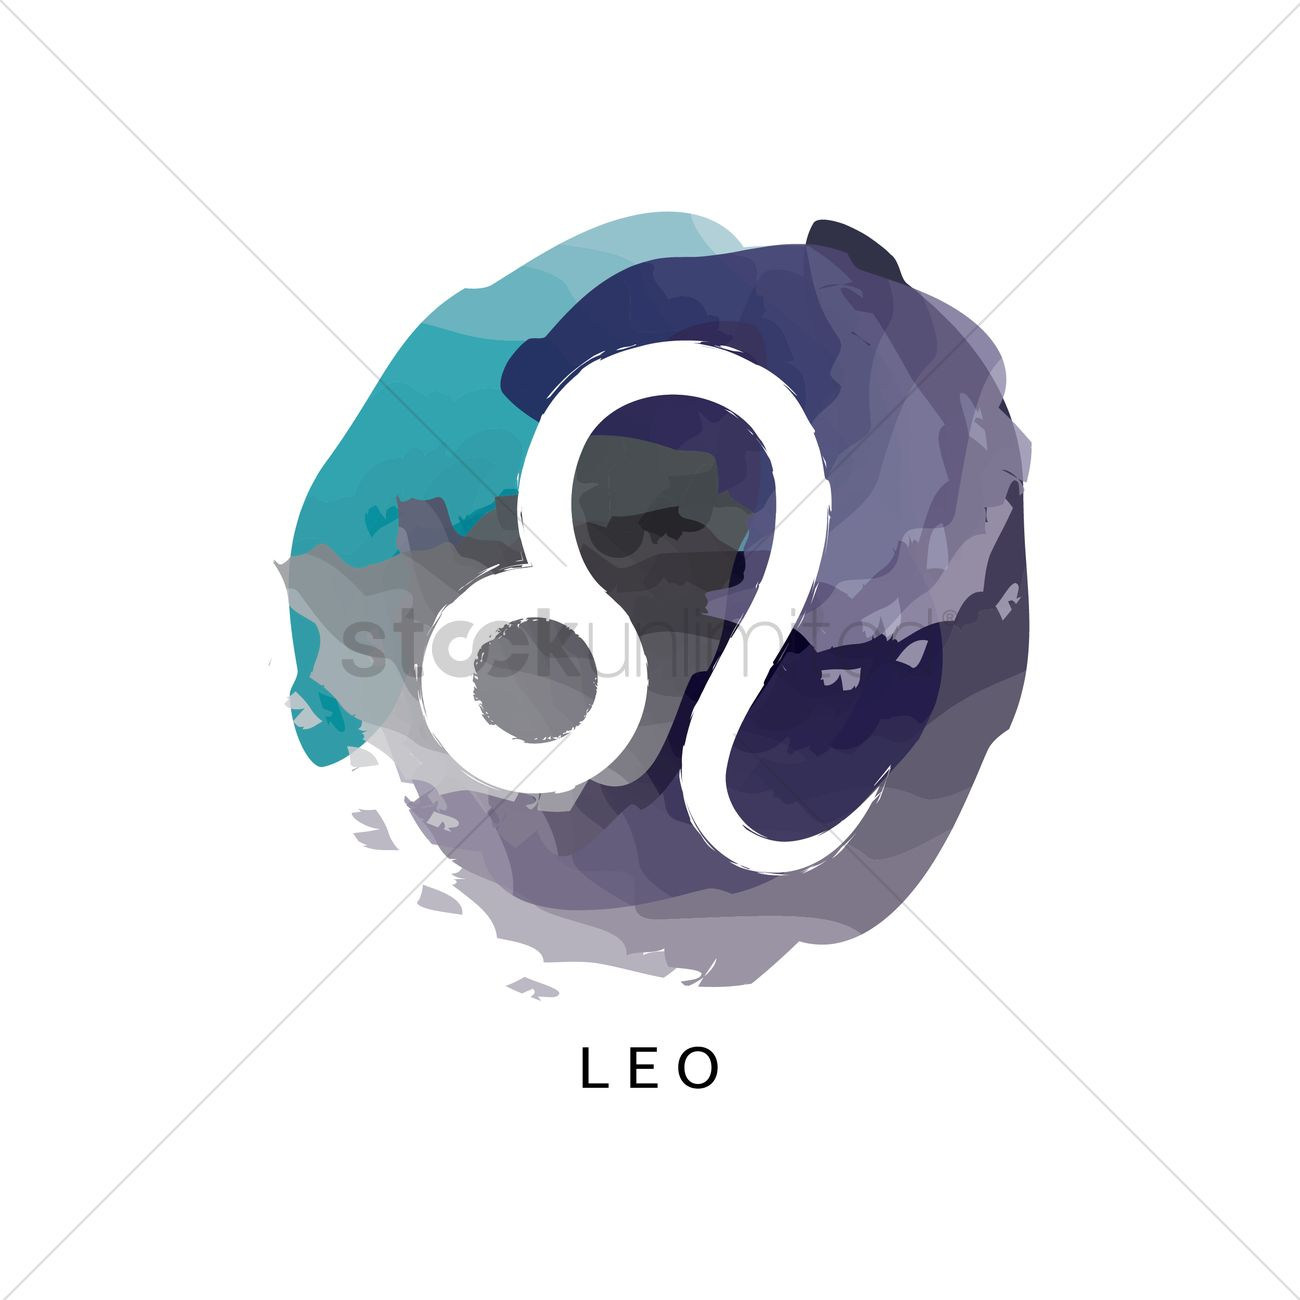 Leo Symbol Vector Image 1964274 Stockunlimited